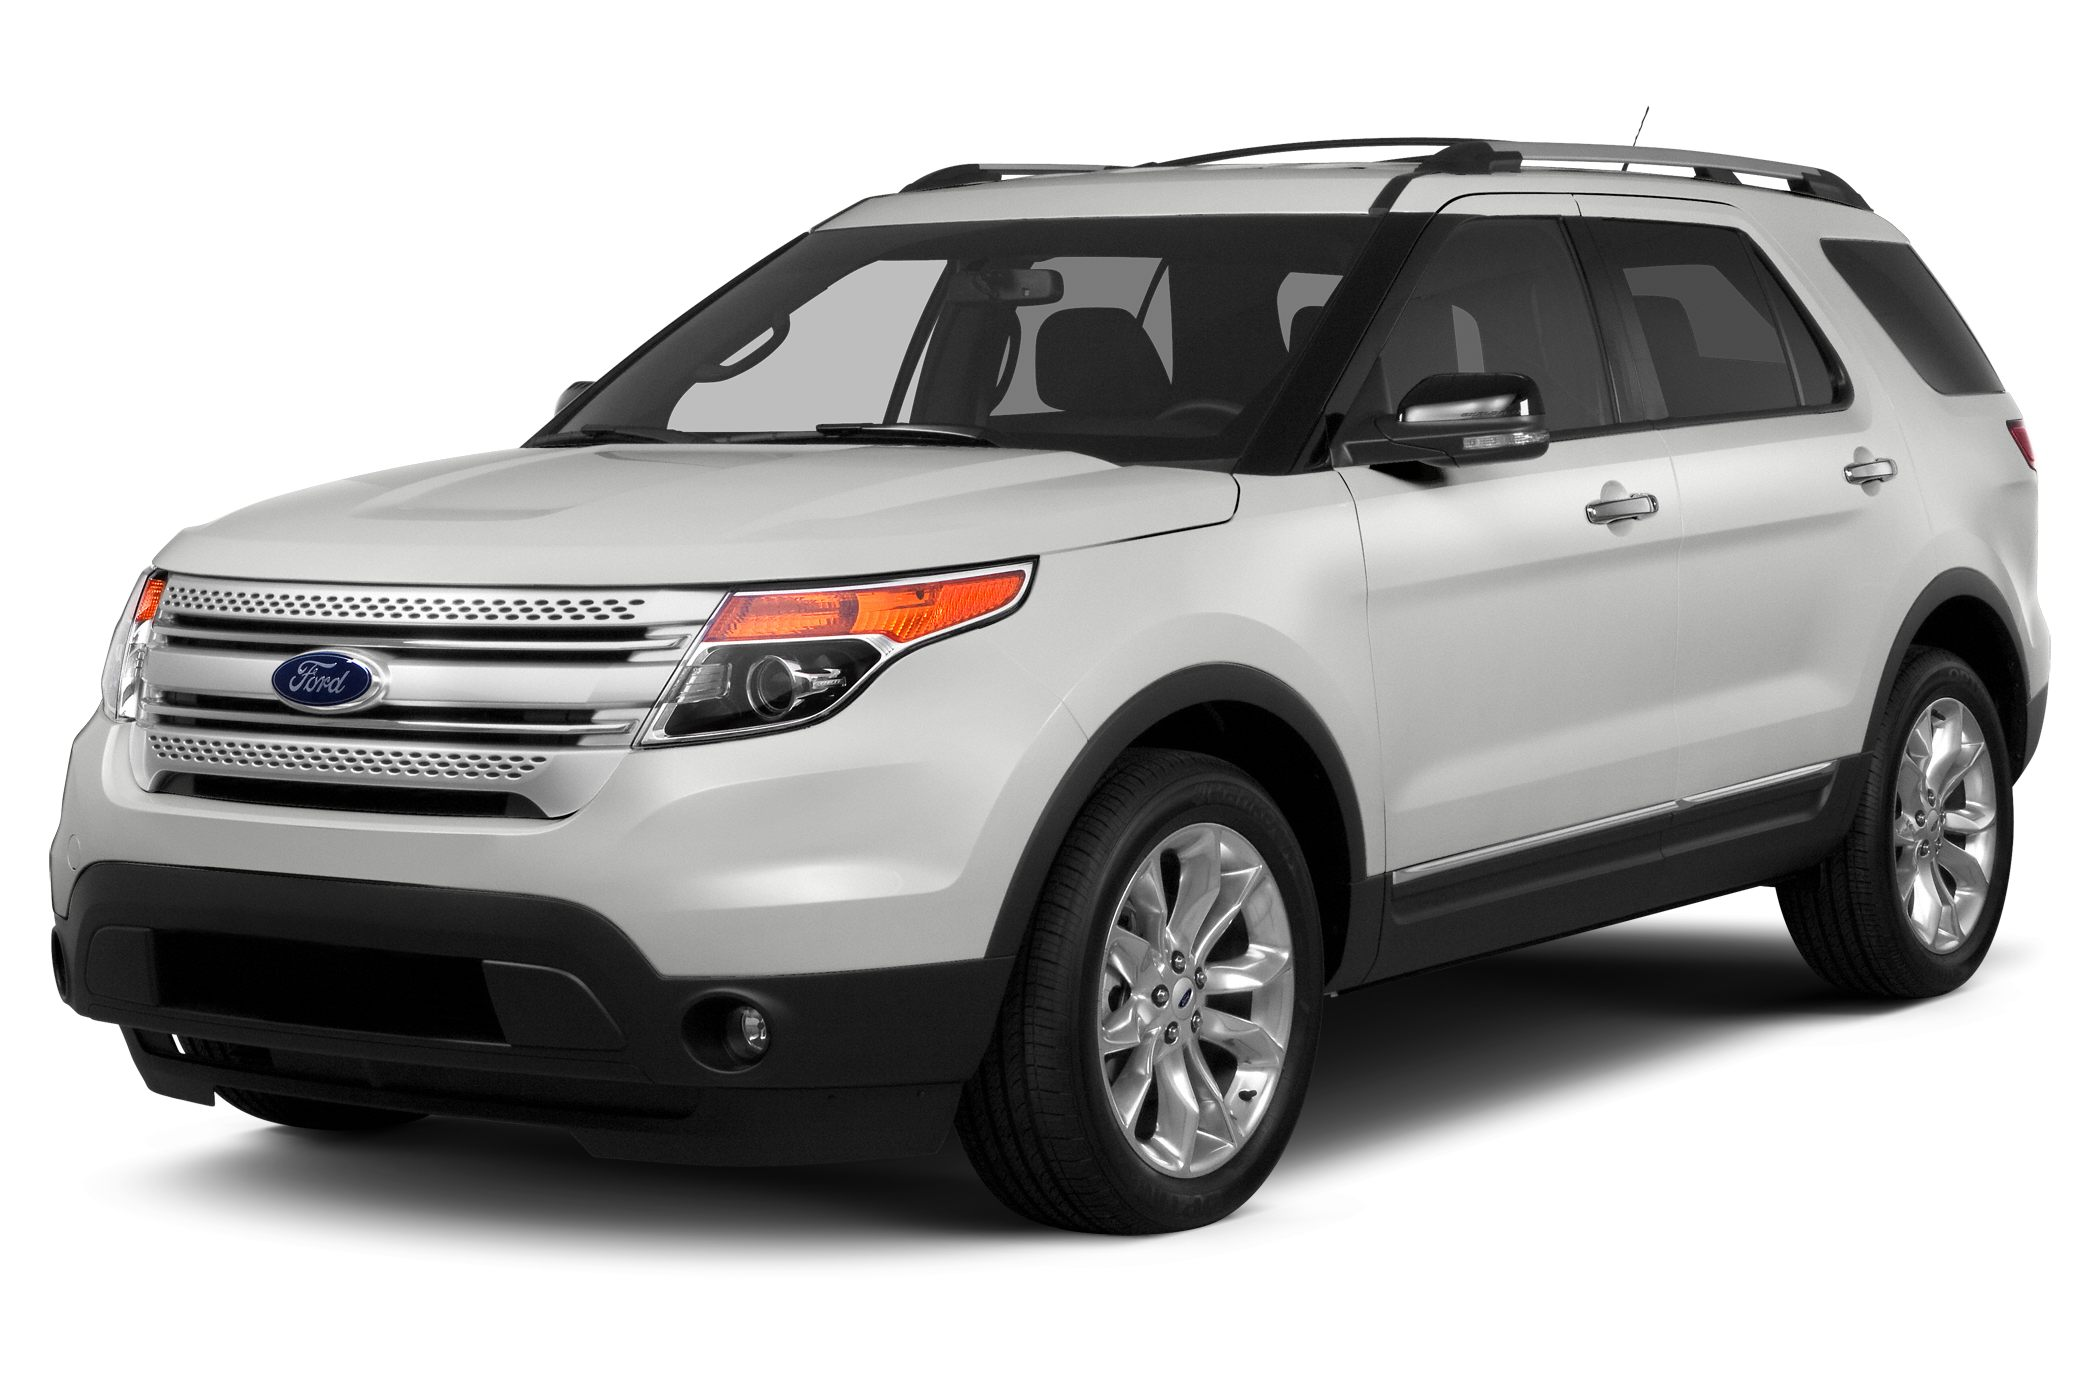 2015 Ford Explorer XLT SUV for sale in New Albany for $36,047 with 5 miles